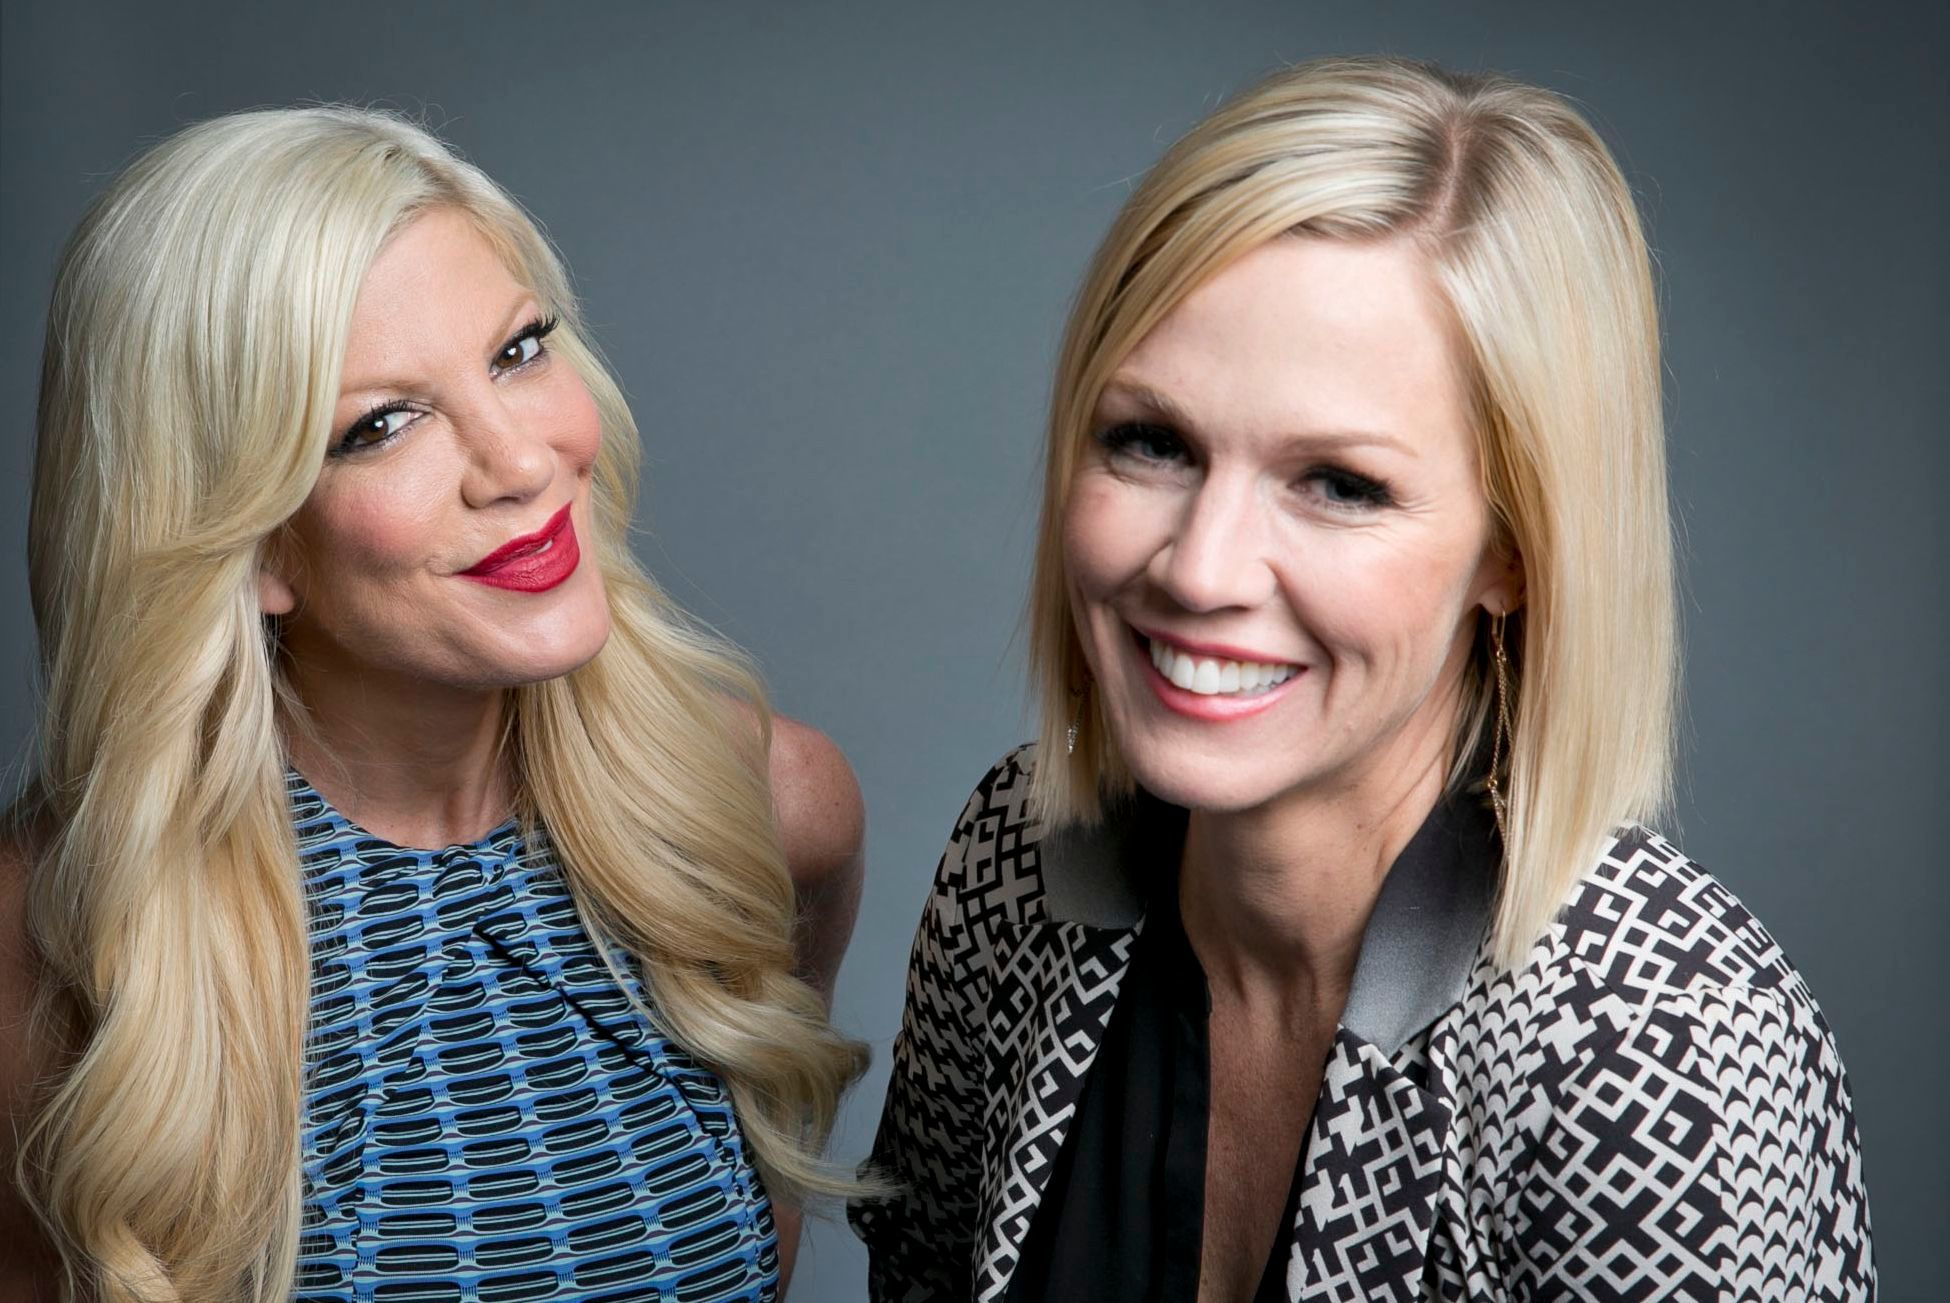 """Original co stars of the Fox television series """"Beverly Hills, 90210"""" actresses Tori Spelling, left, and Jennie Garth, pose for a portrait in promotion of their upcoming ABC Family series """"Mystery Girls"""" in 2014, in New York City."""